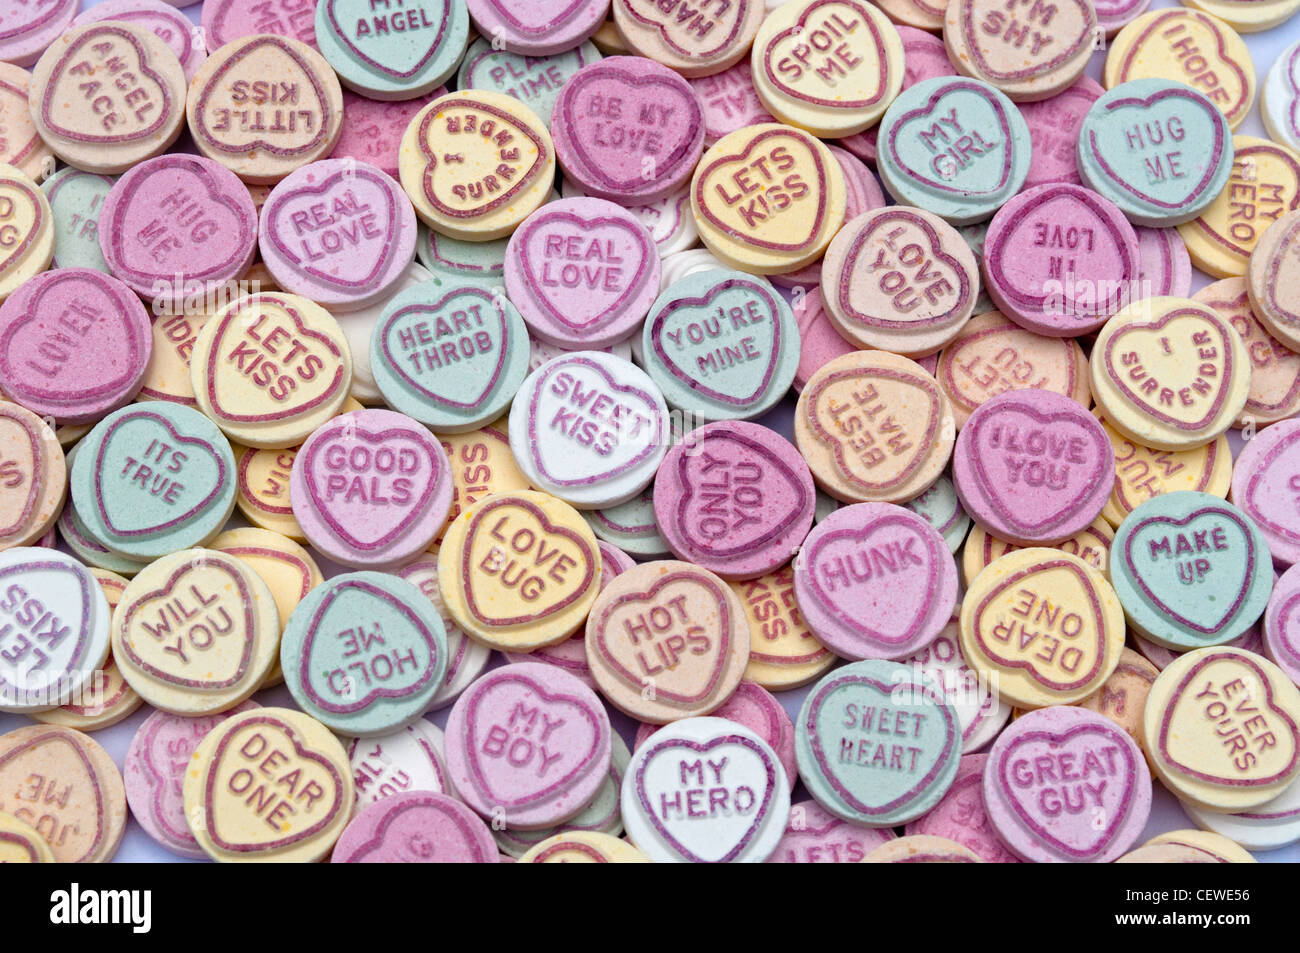 love heart sweets stock photos & love heart sweets stock images - alamy